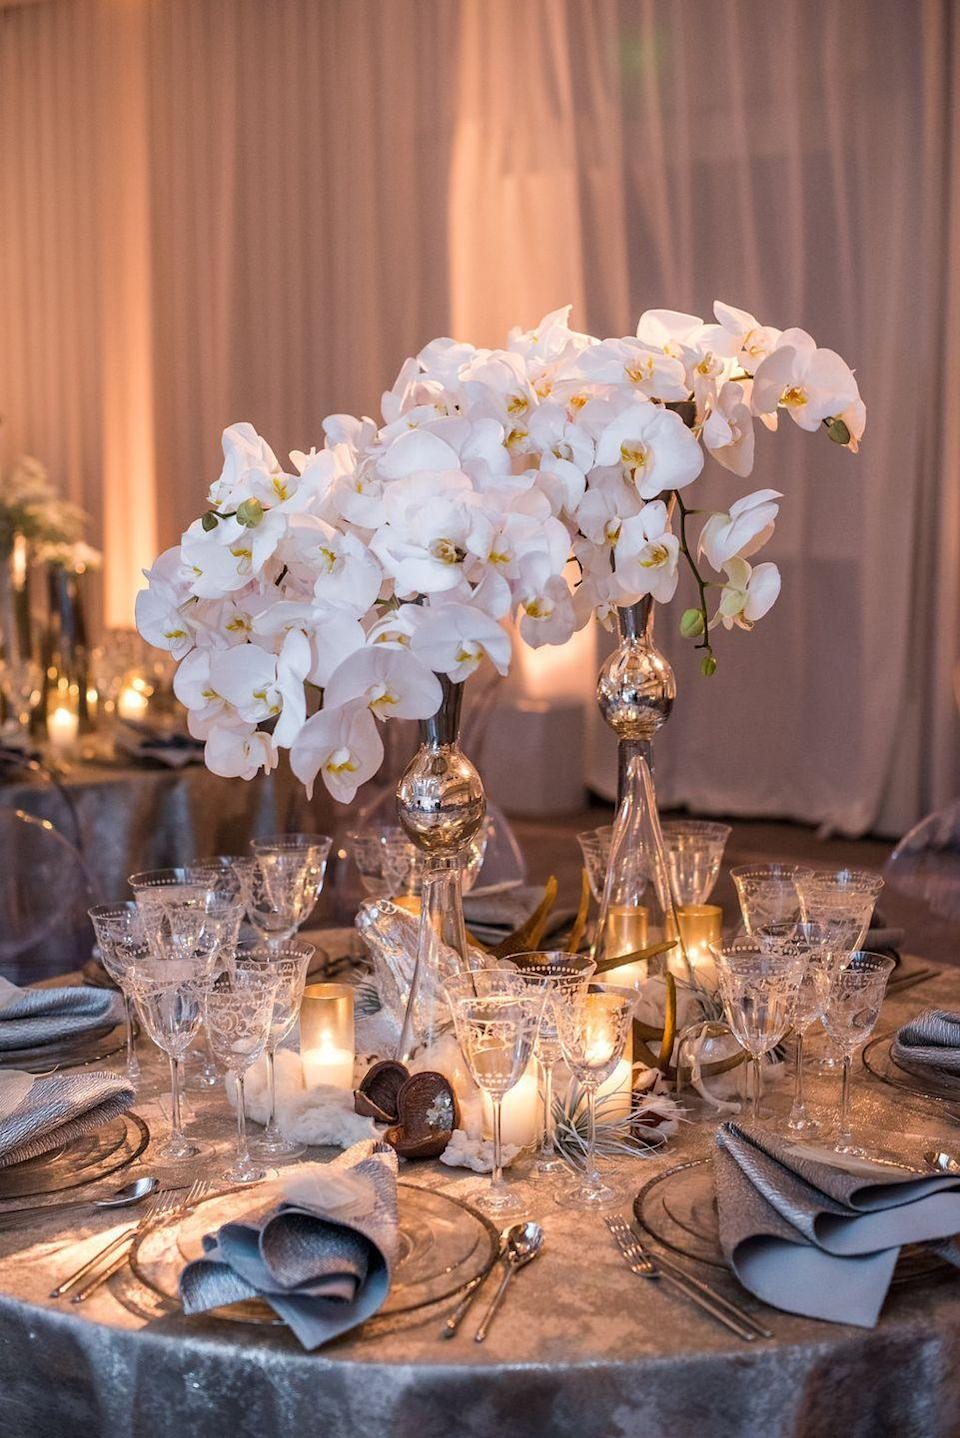 "<p>If you're worried about matching your centerpiece with the rest of your colorful Christmas decor, remember that white flowers are typically a safe bet for the holidays. Here, towering blooms are illuminated by clusters of glowing candles. </p><p><em>Via </em><a href=""http://www.kristinbanta.com/"" rel=""nofollow noopener"" target=""_blank"" data-ylk=""slk:Kristin Banta Events"" class=""link rapid-noclick-resp""><em>Kristin Banta Events</em></a></p>"